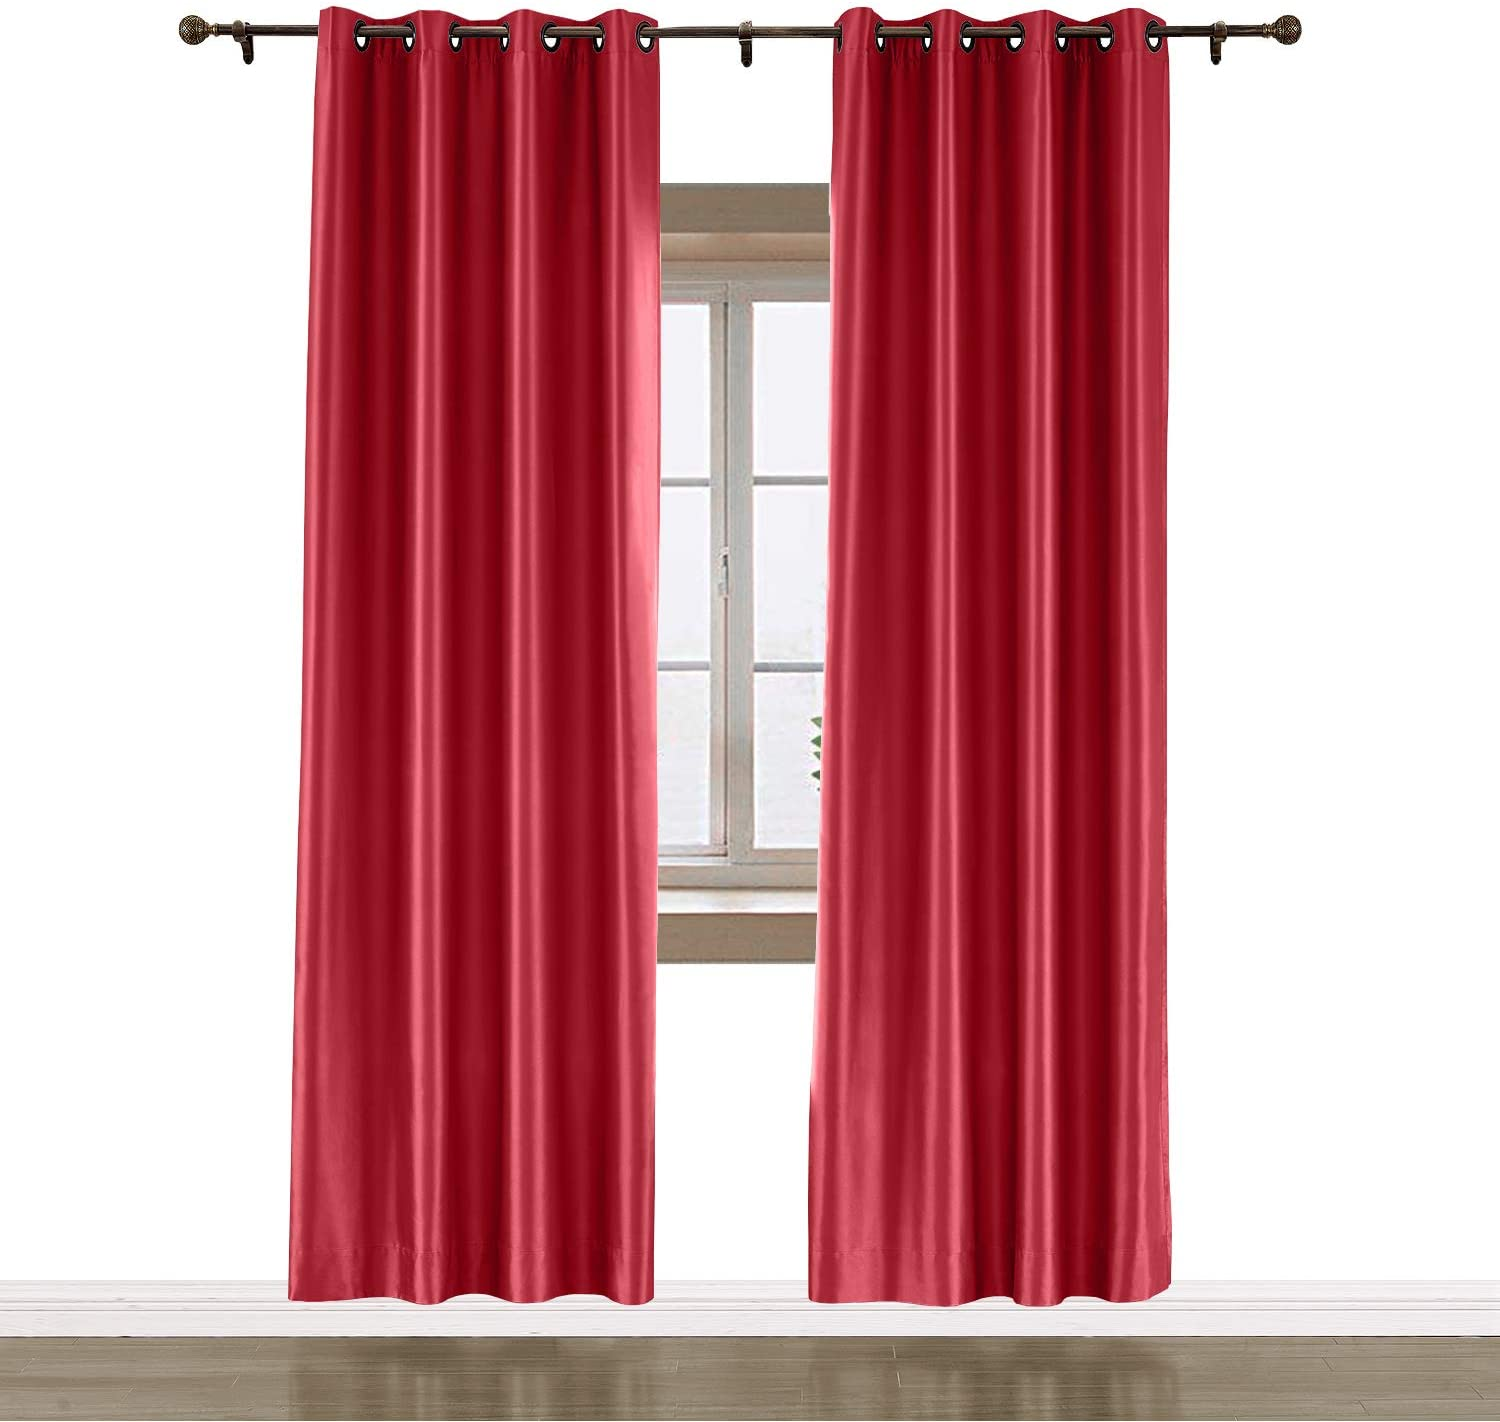 Macochico Thermal Insulated Privacy Protection Dustproof Noise Reducing Indoor Curtain Panels 100Wx 96L Red Drapes Reading Room Bedroom Office Patio Gazebo Cabana (1 Panel)